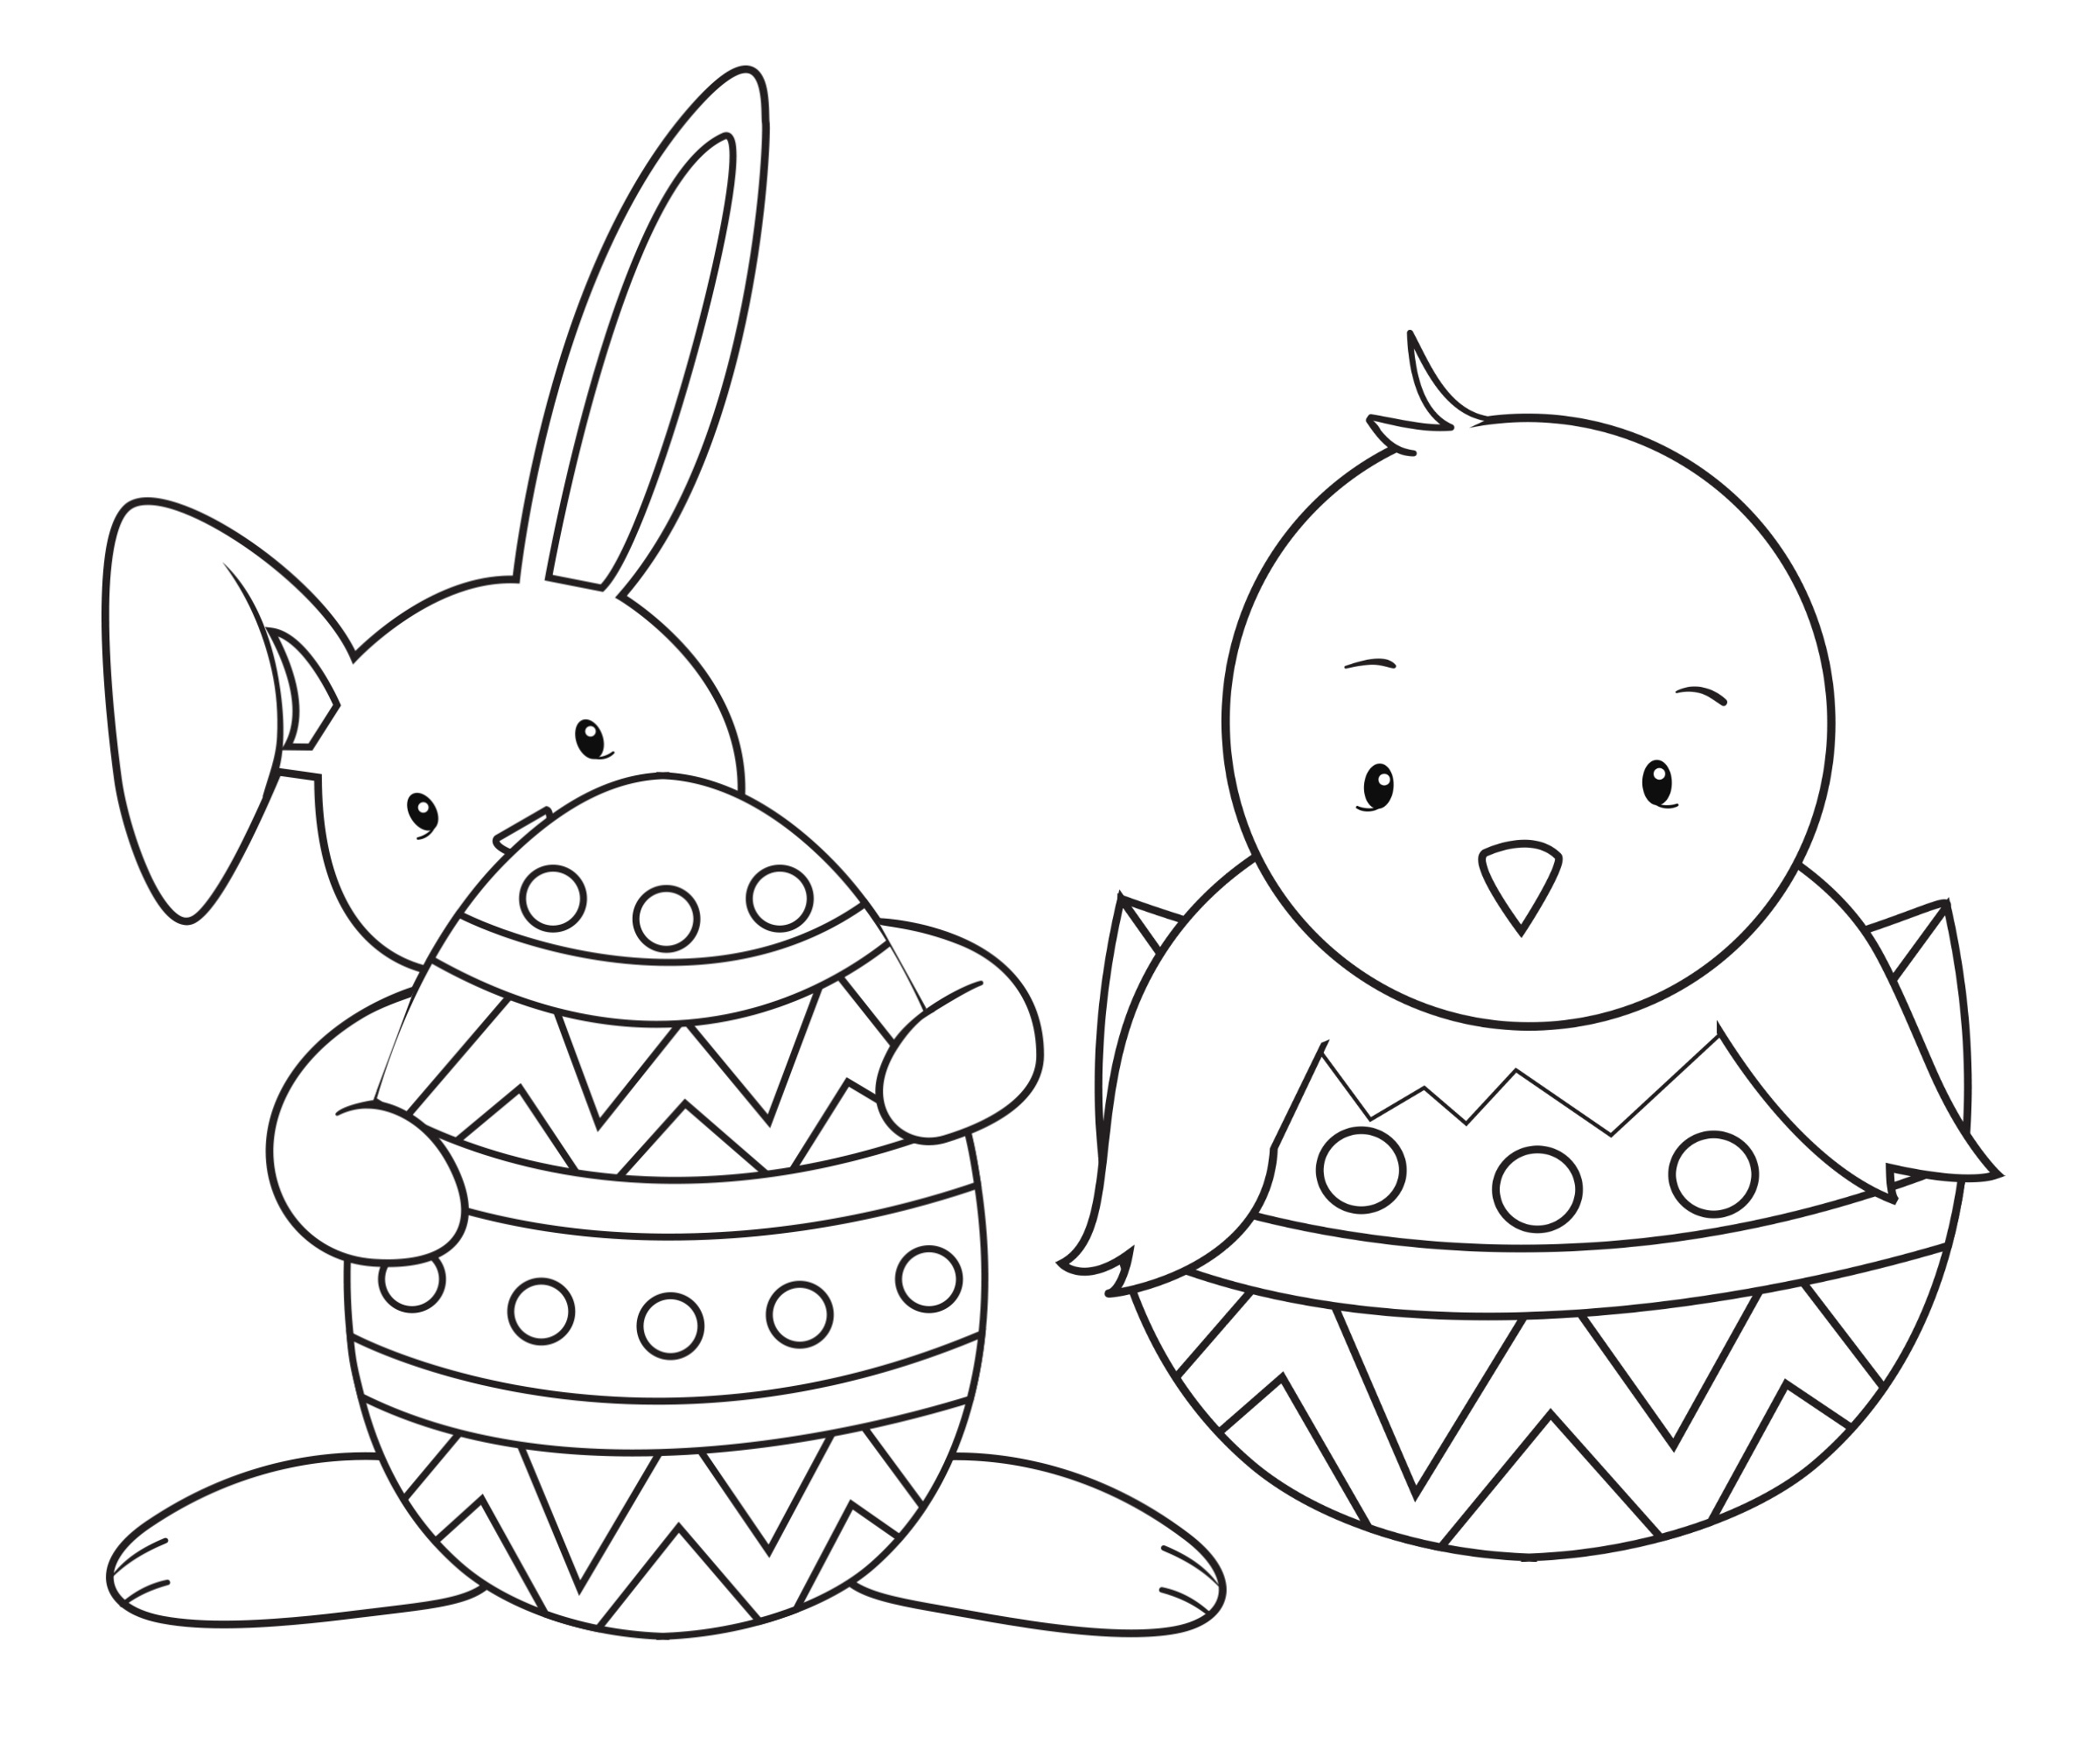 Easter Coloring Pages For Kids - Crazy Little Projects - Free Printable Coloring Pages Easter Basket